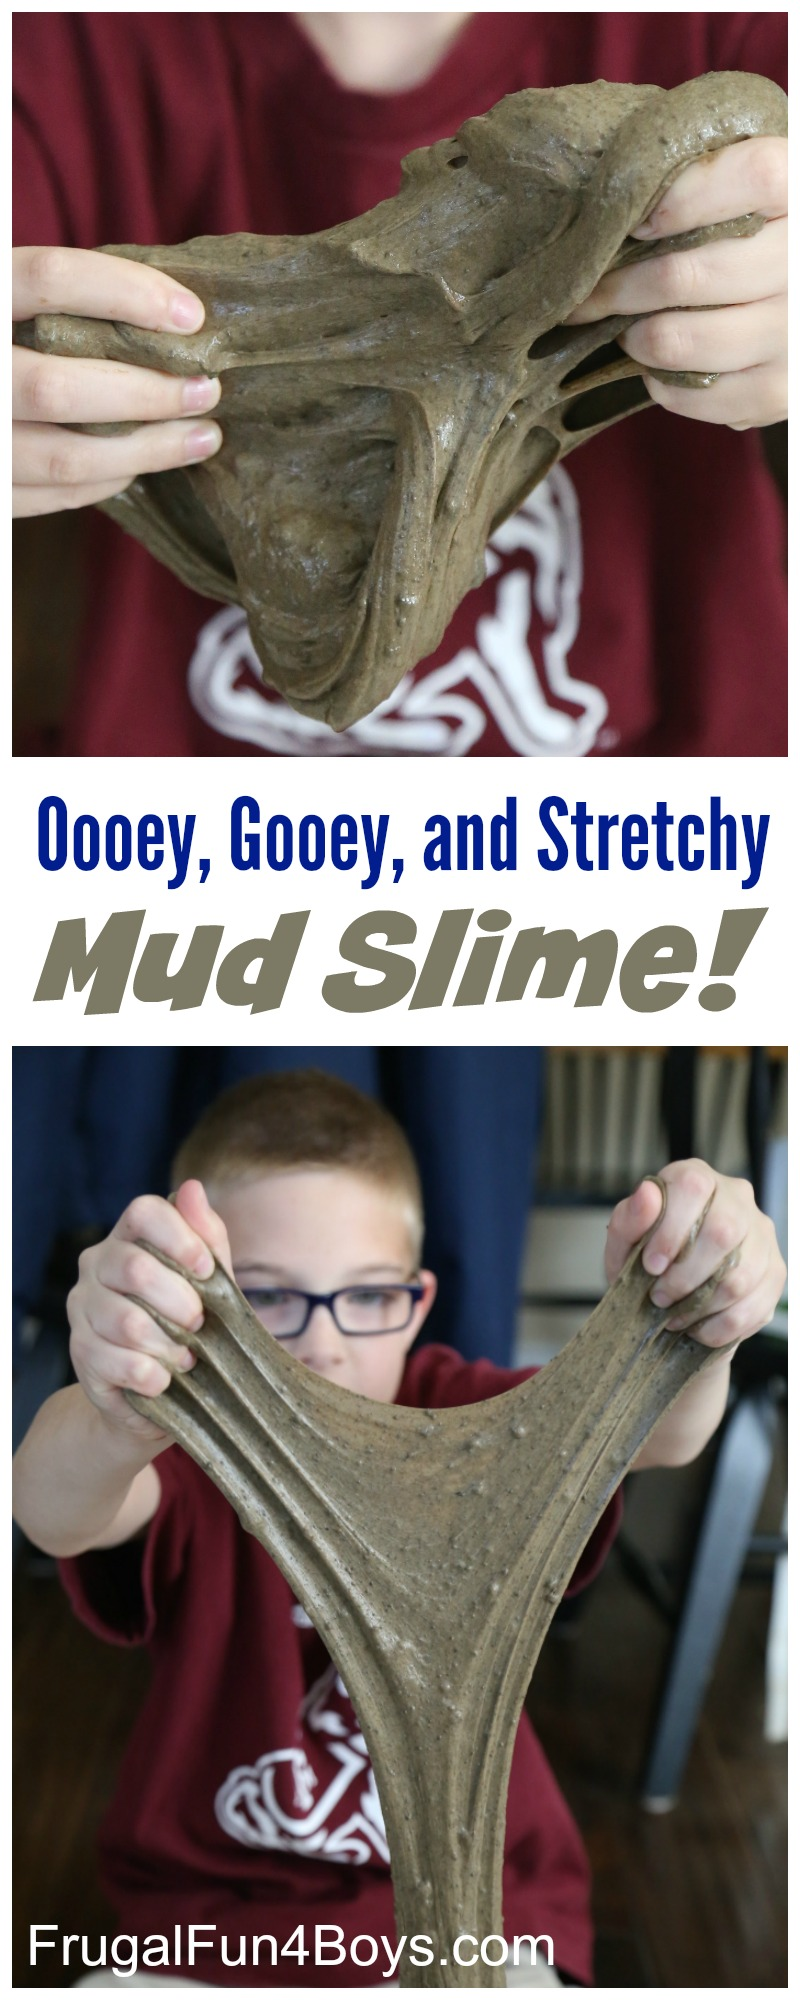 How to Make Oooey, Gooey, and Stretchy Mud Slime